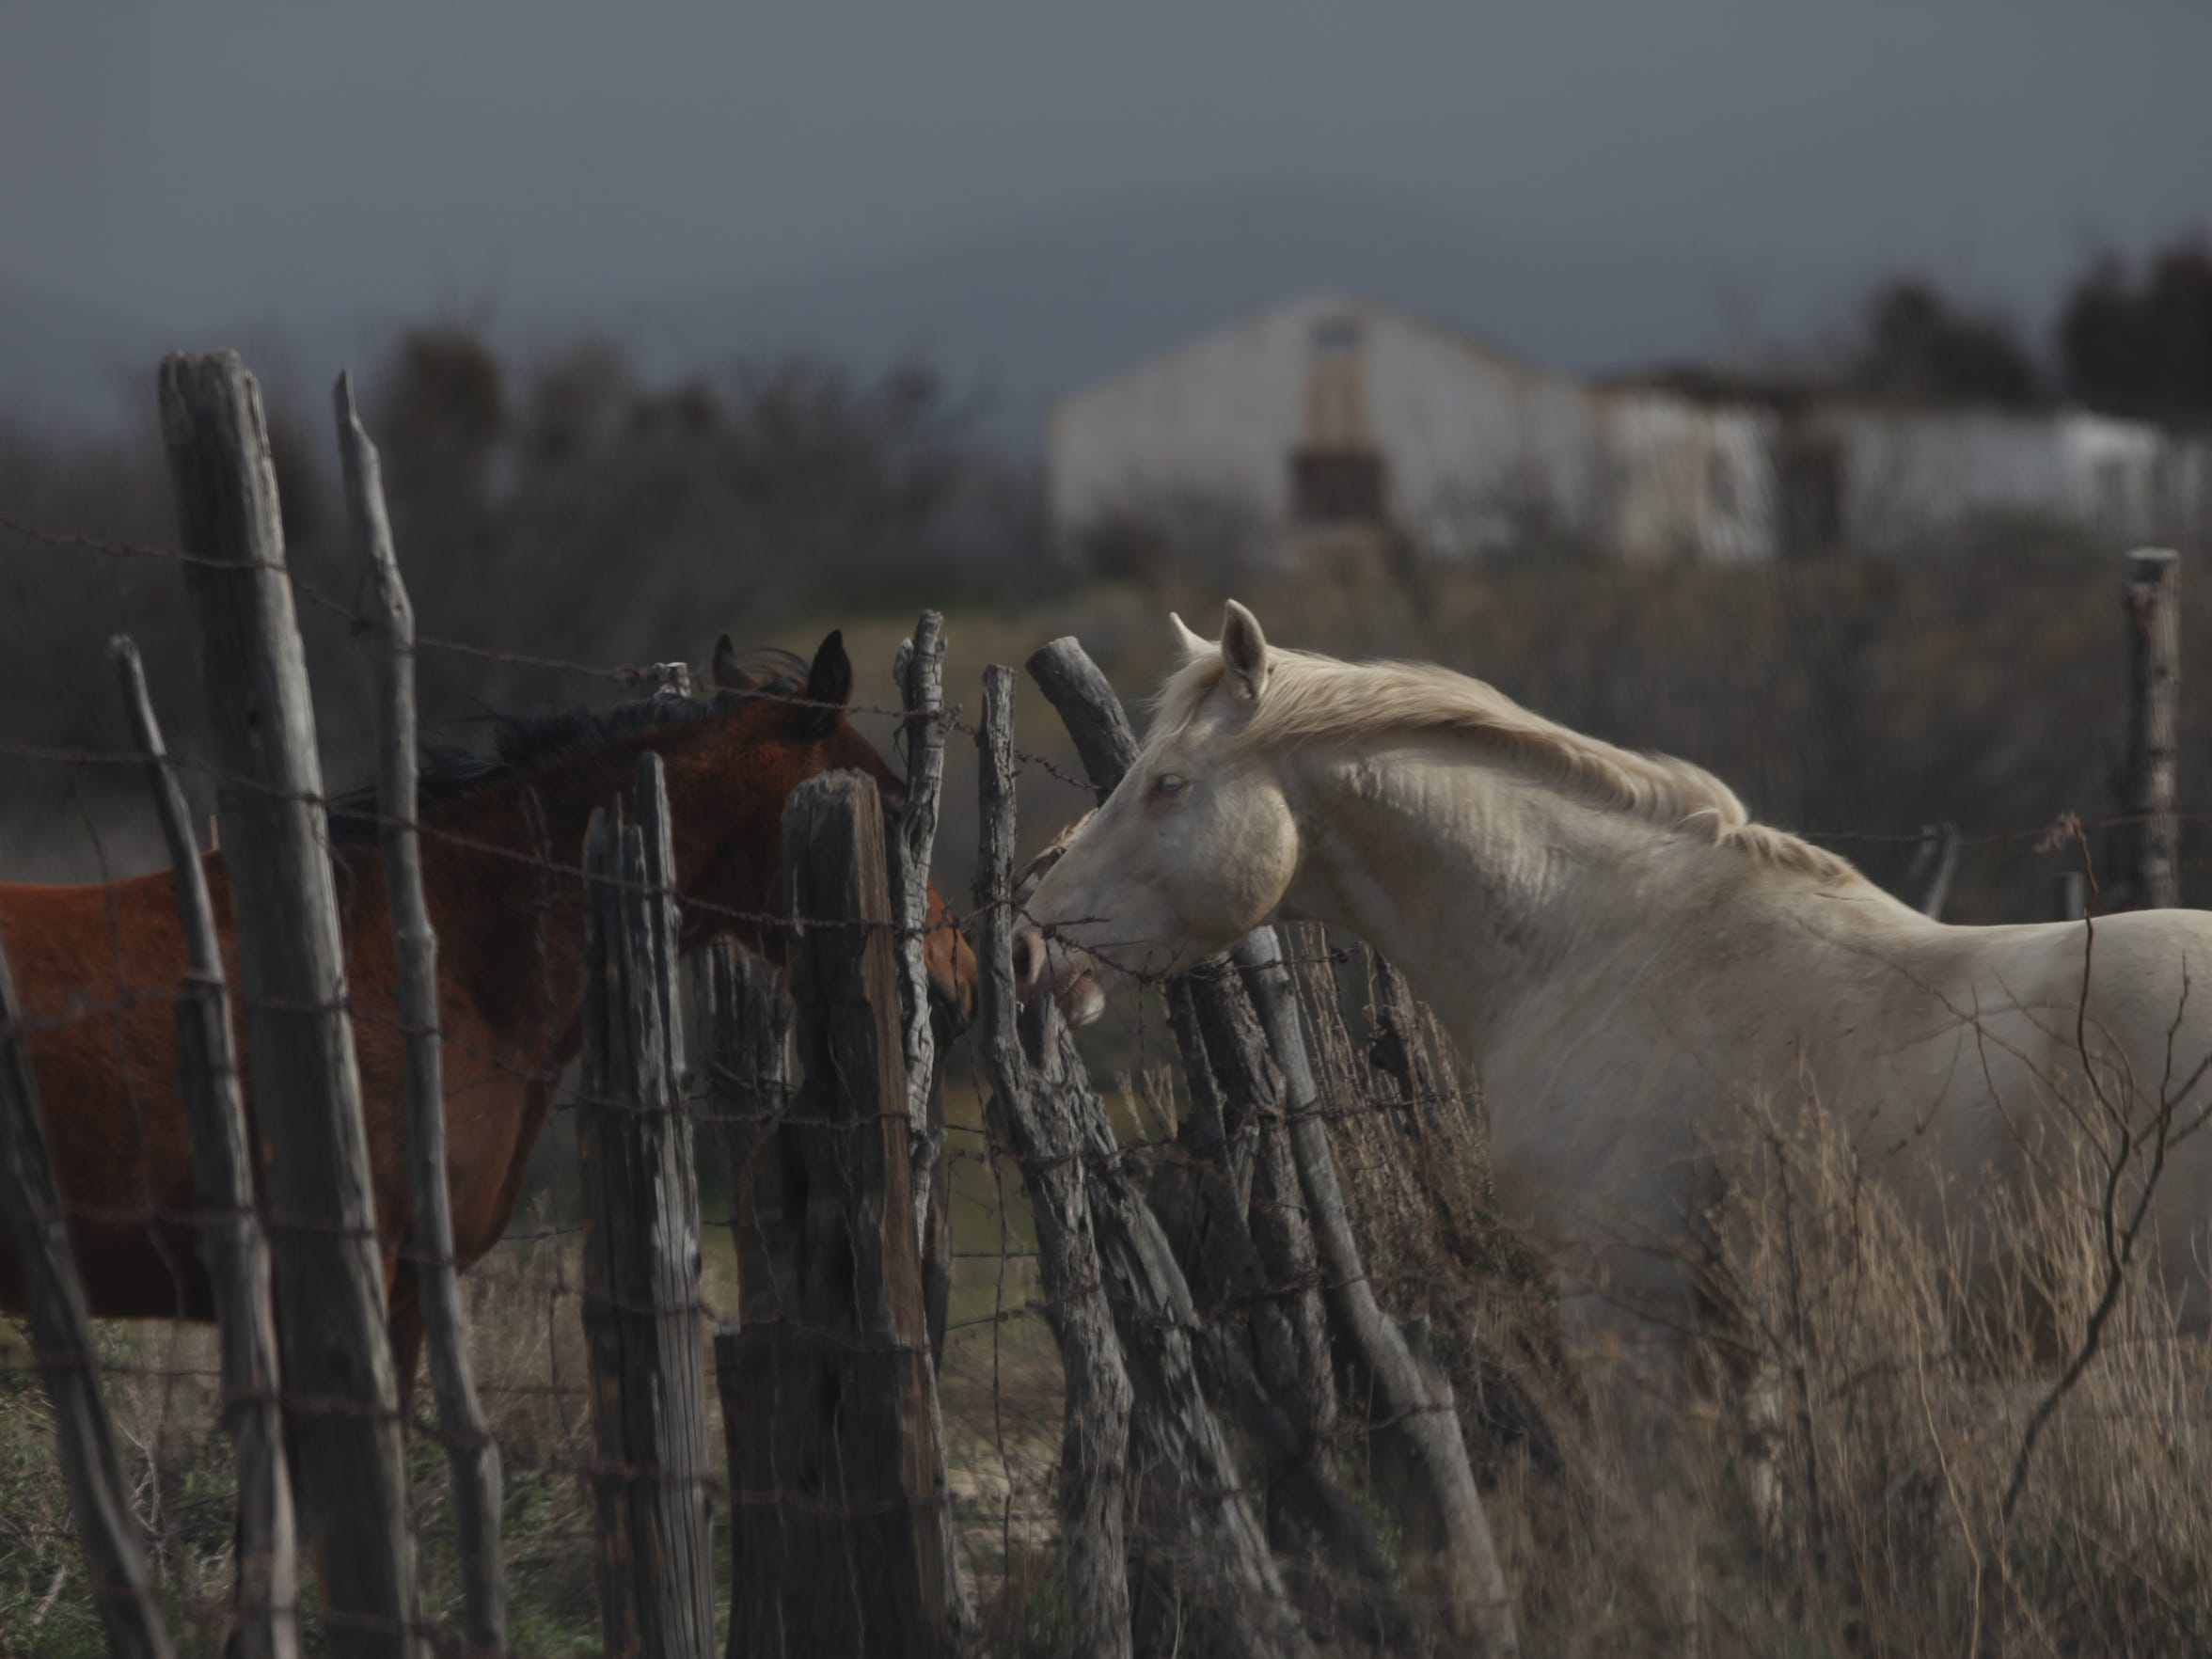 Horses roam openly in Jacume just a few hundred yards from the U.S./Mexico international border.